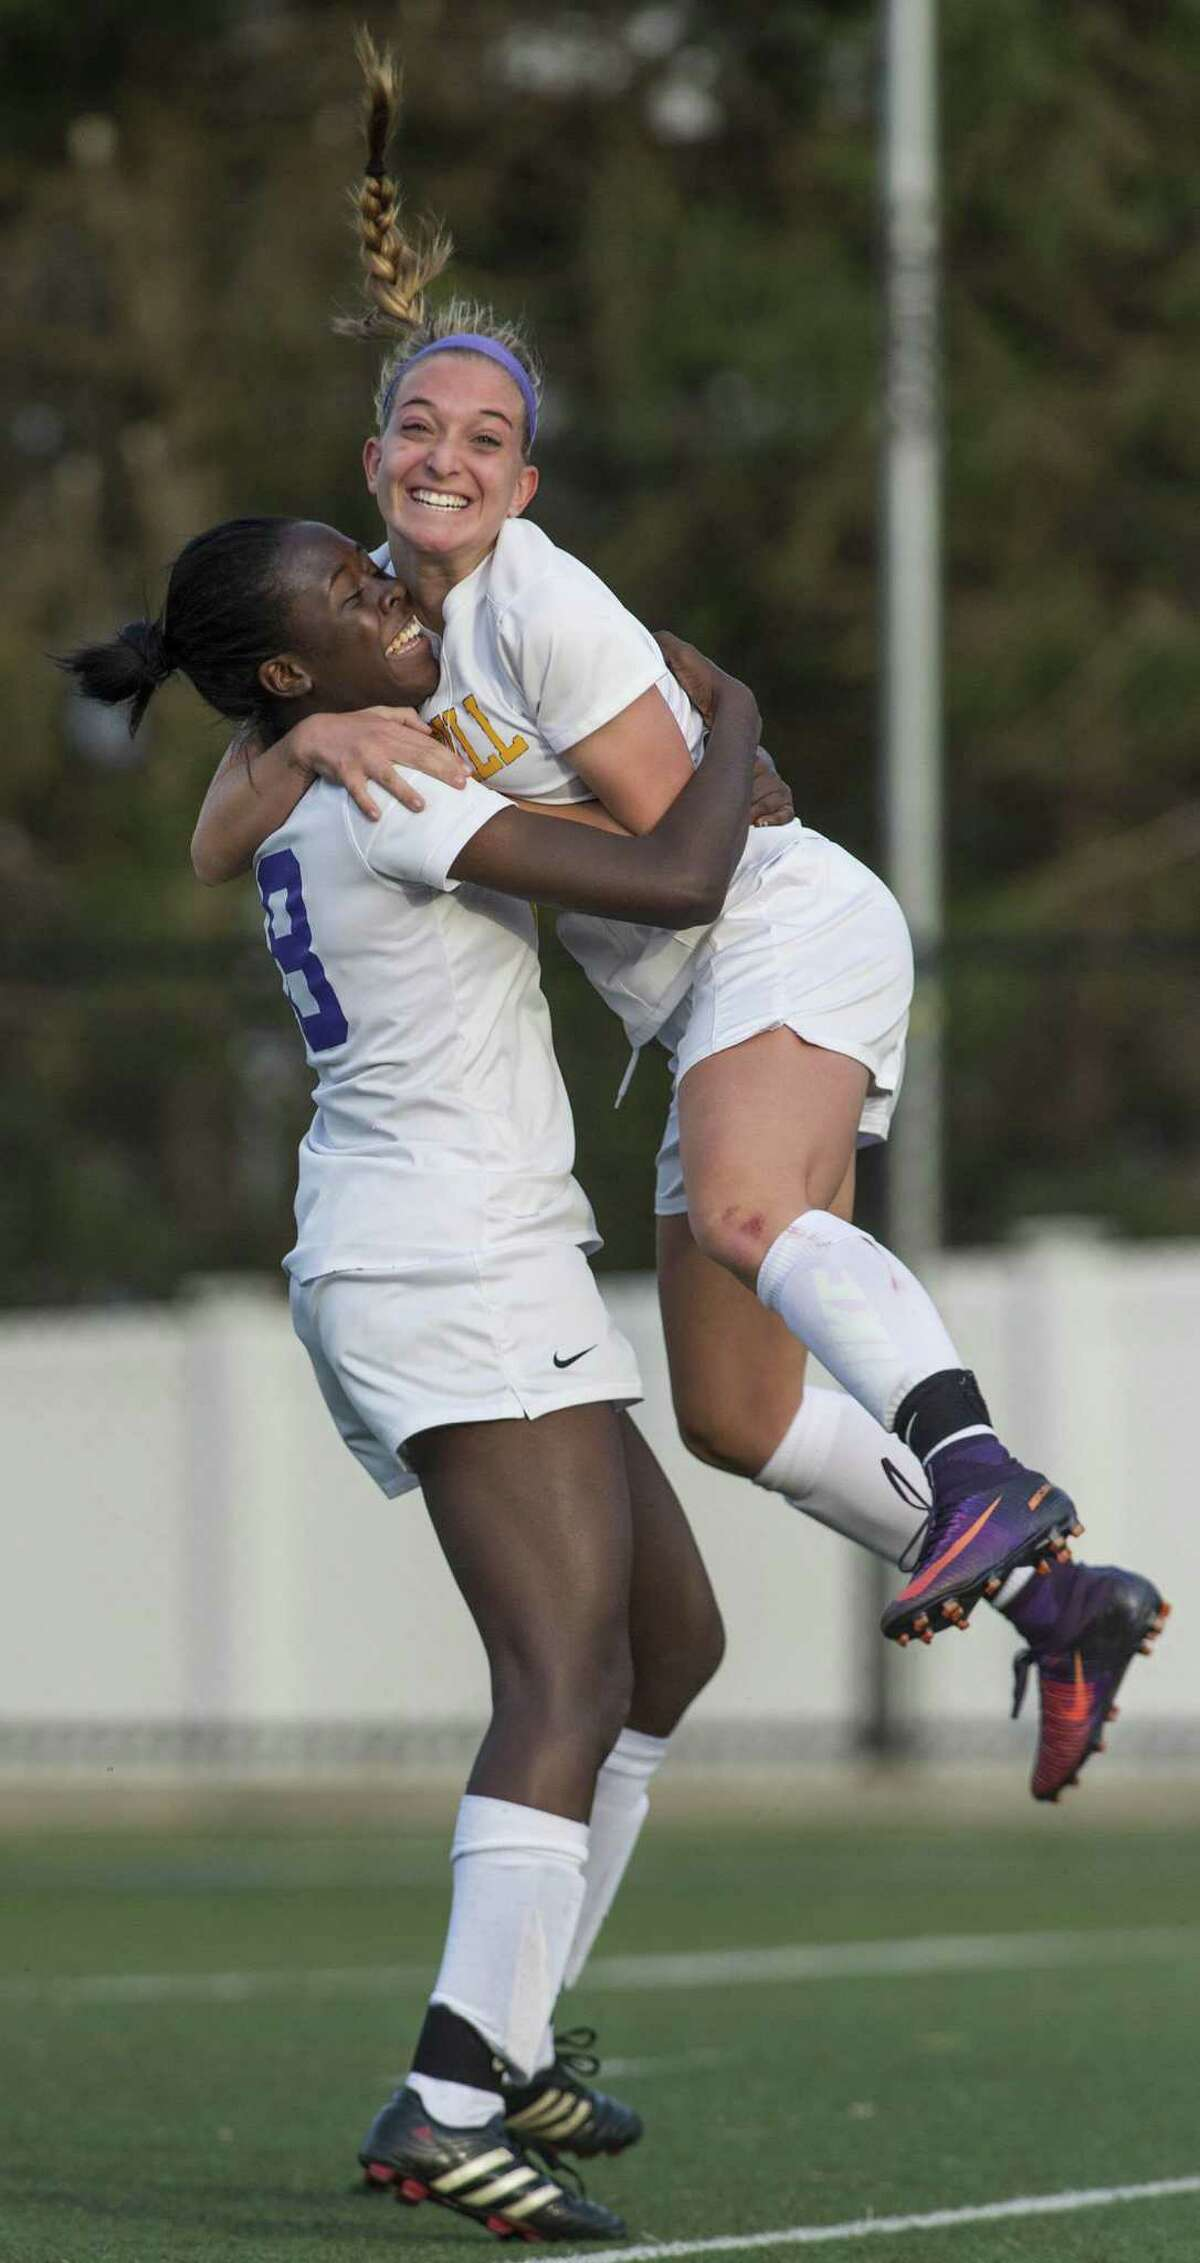 Westhill's Chelsea Domond, left, and Claudia Benz celebrate after Chelsea scored a goal in a CIAC class LL girls soccer quarterfinal against Wilton on Nov. 14, 2016. Domond and teammate Natalie Druehl have been playing together since they were on an under-8 team.